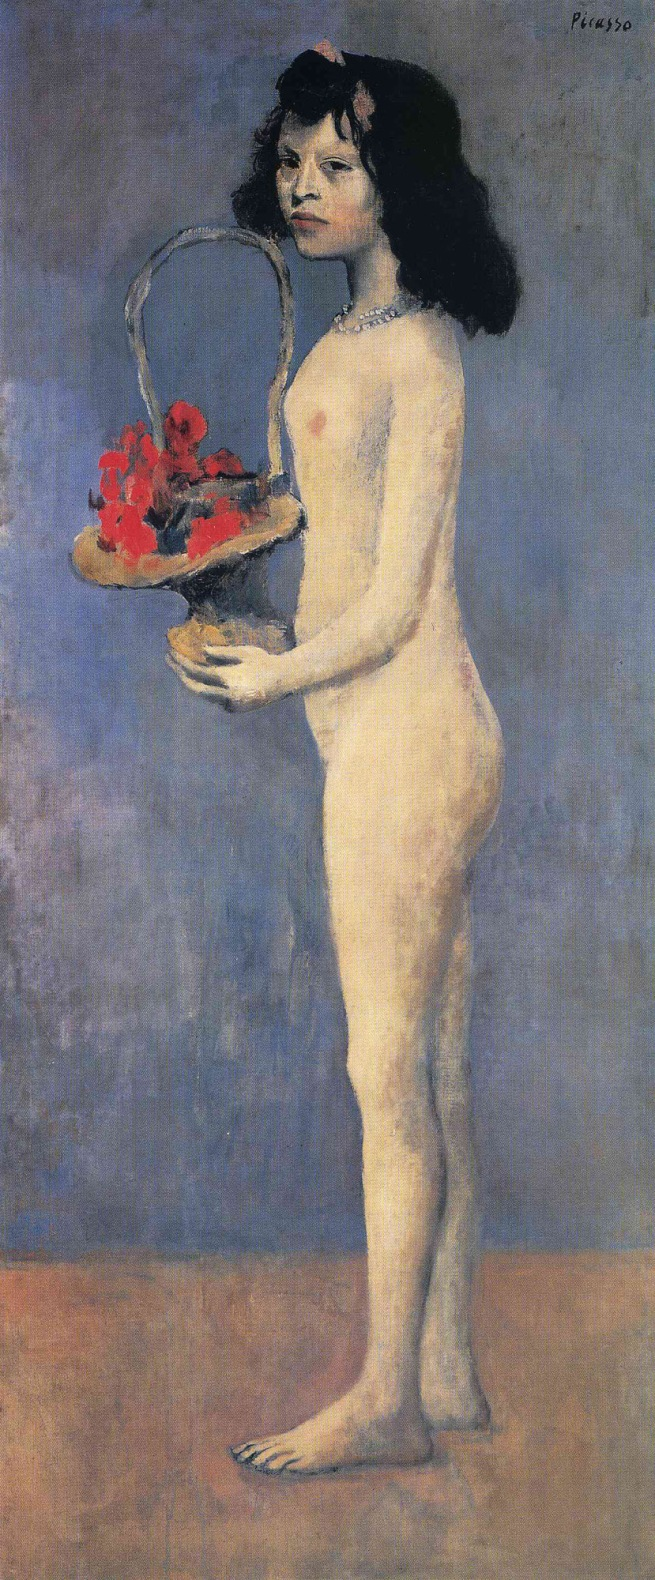 Pablo Picasso (Spanish, 1881-1973) 'Fillette nue au panier de fleurs' (Le panier fleuri) (Girl with a Basket of Flowers) 1905